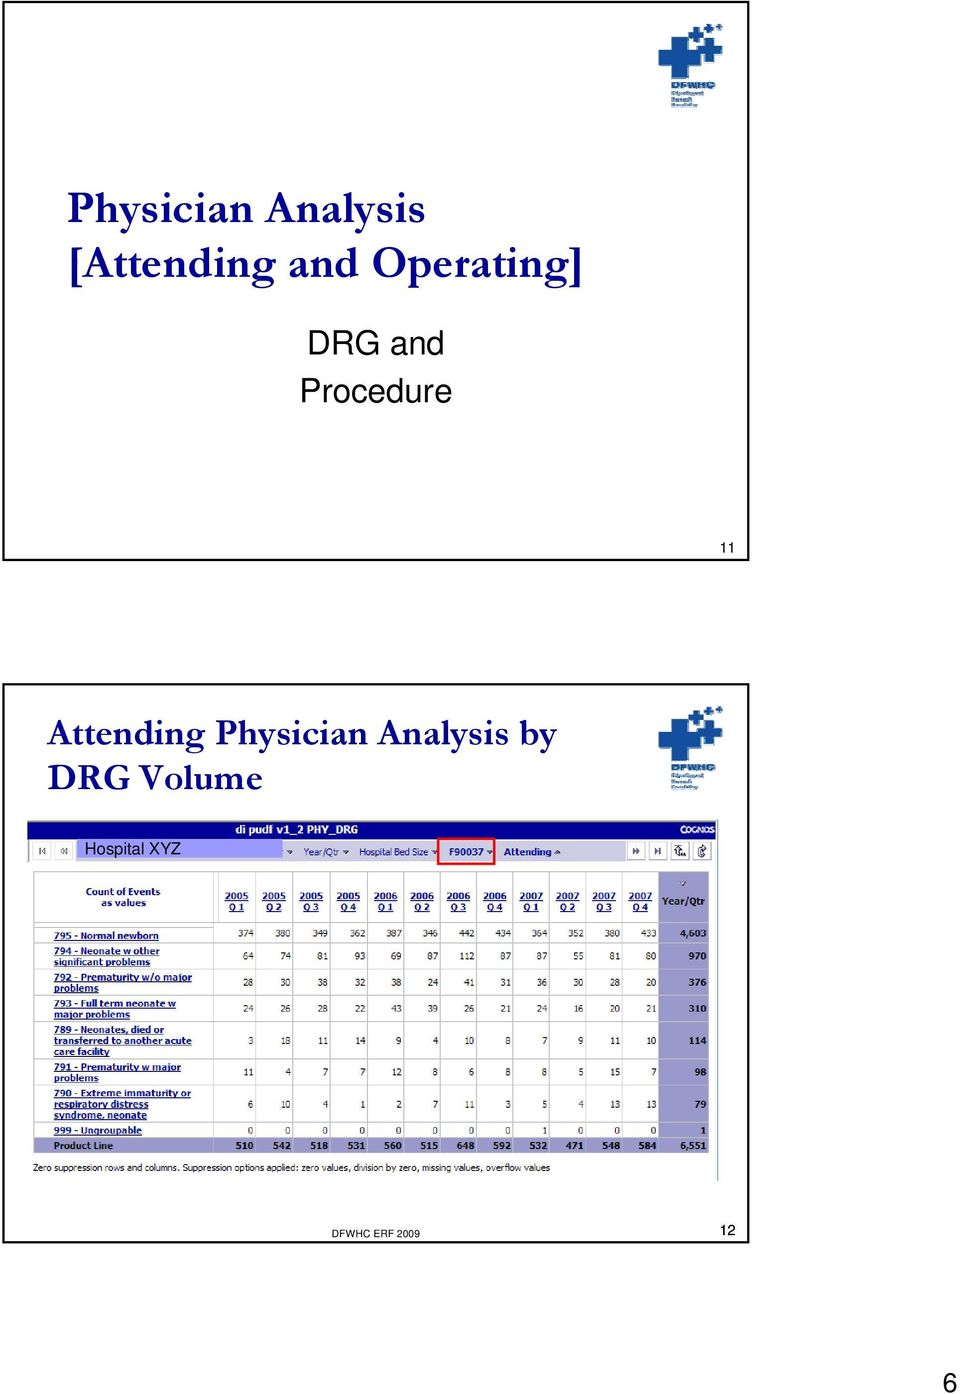 Attending Physician Analysis by DRG